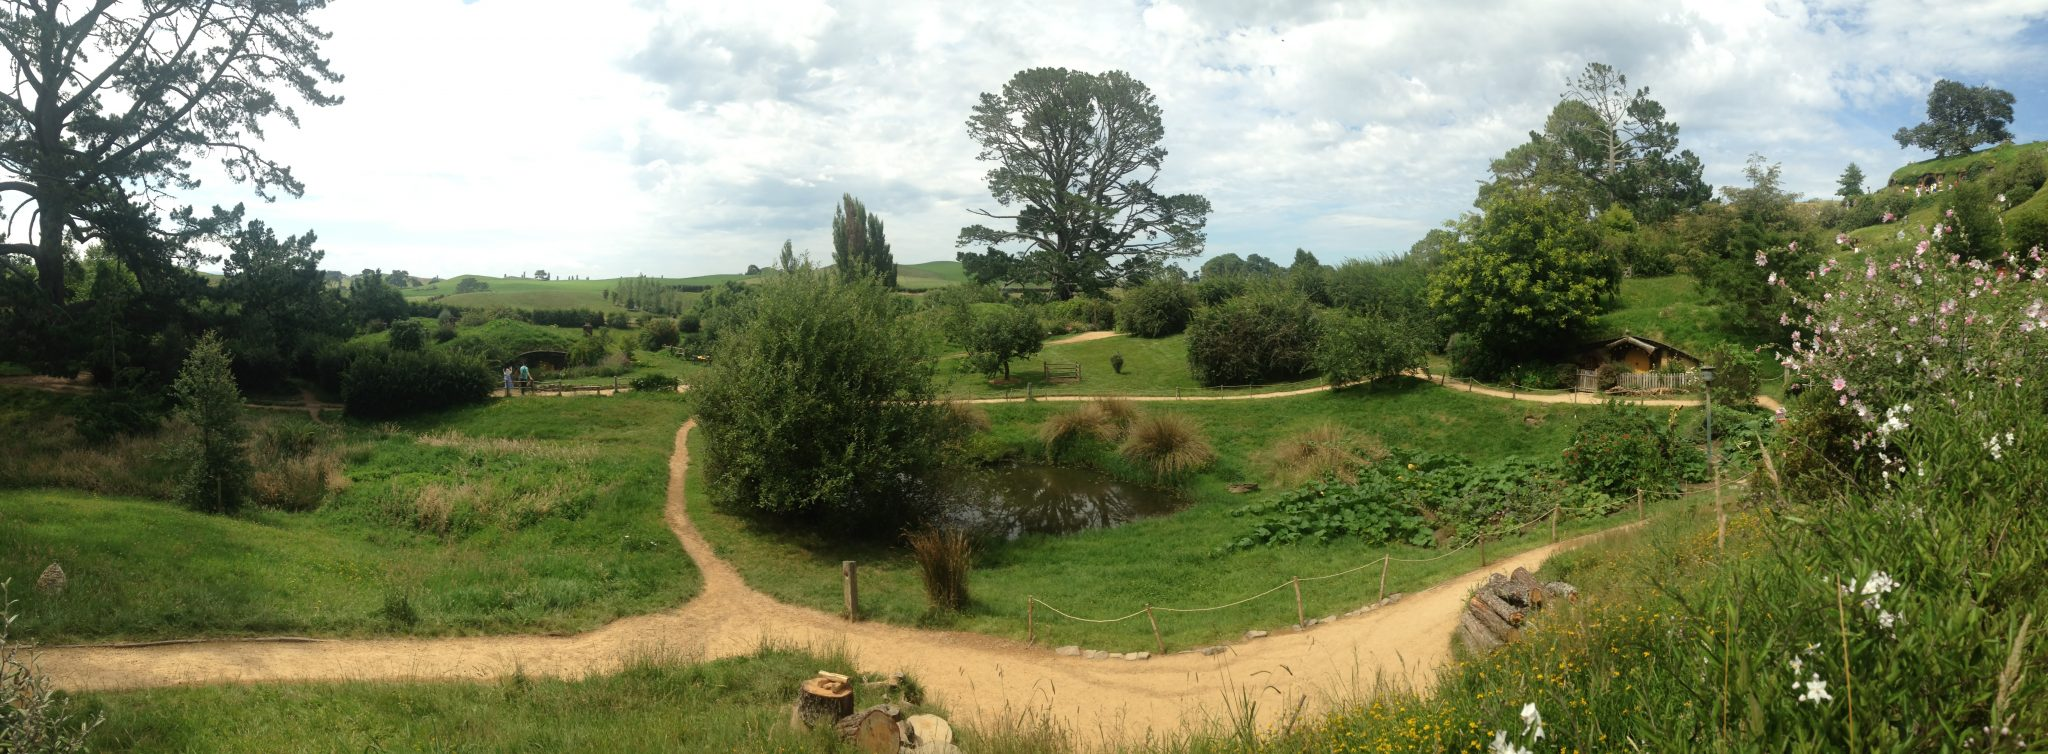 Panoramic view of the Shire, Hobbiton Movie Set, New Zealand.